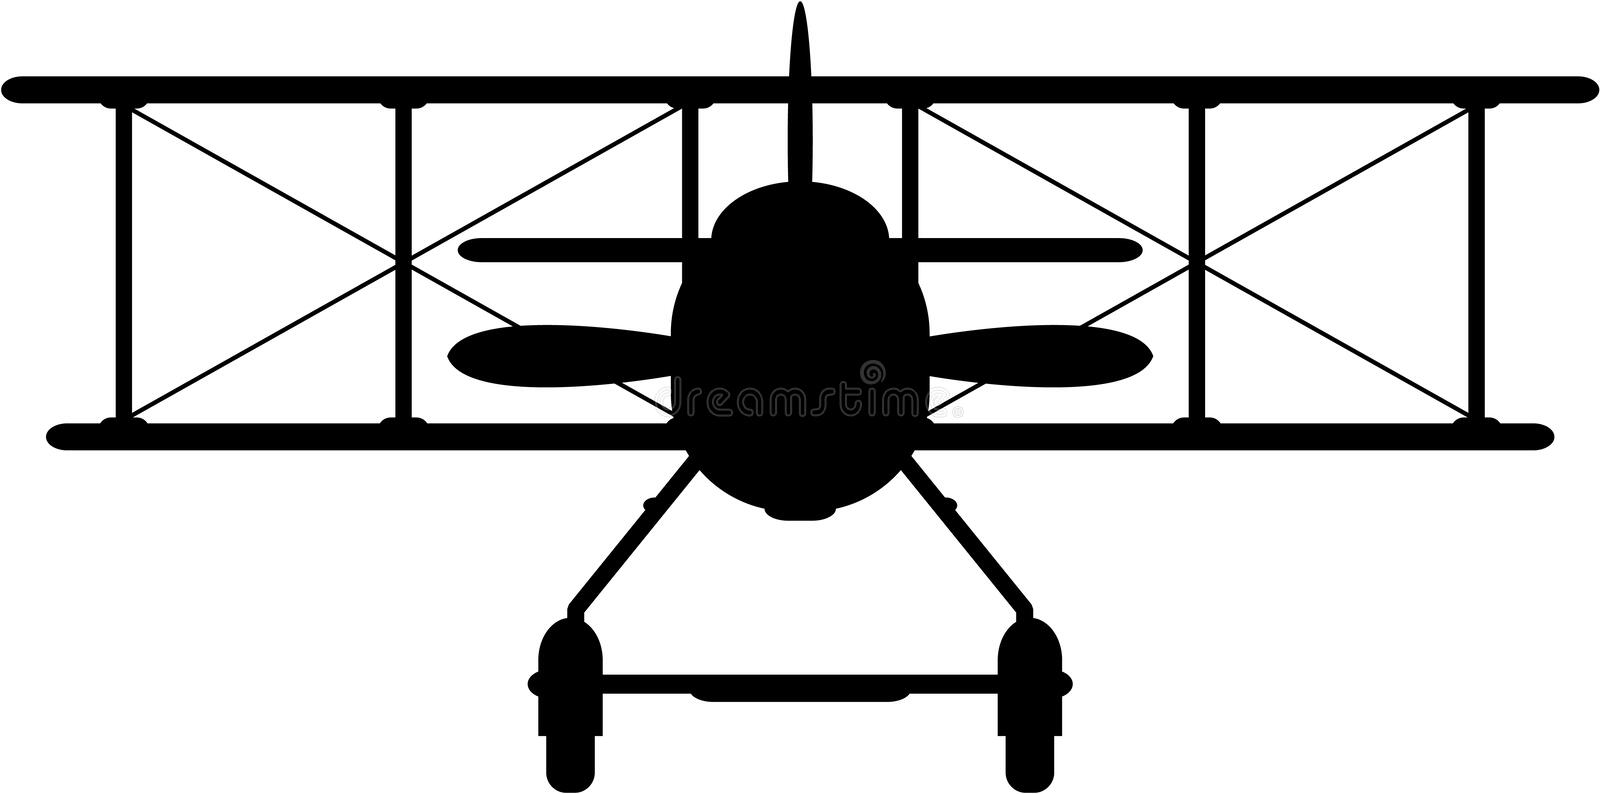 Cartoon WW1 Biplane Silhouette. Side View Vector Illustration of a World War One Classic Biplane in Silhouette. An EPS file is also available vector illustration